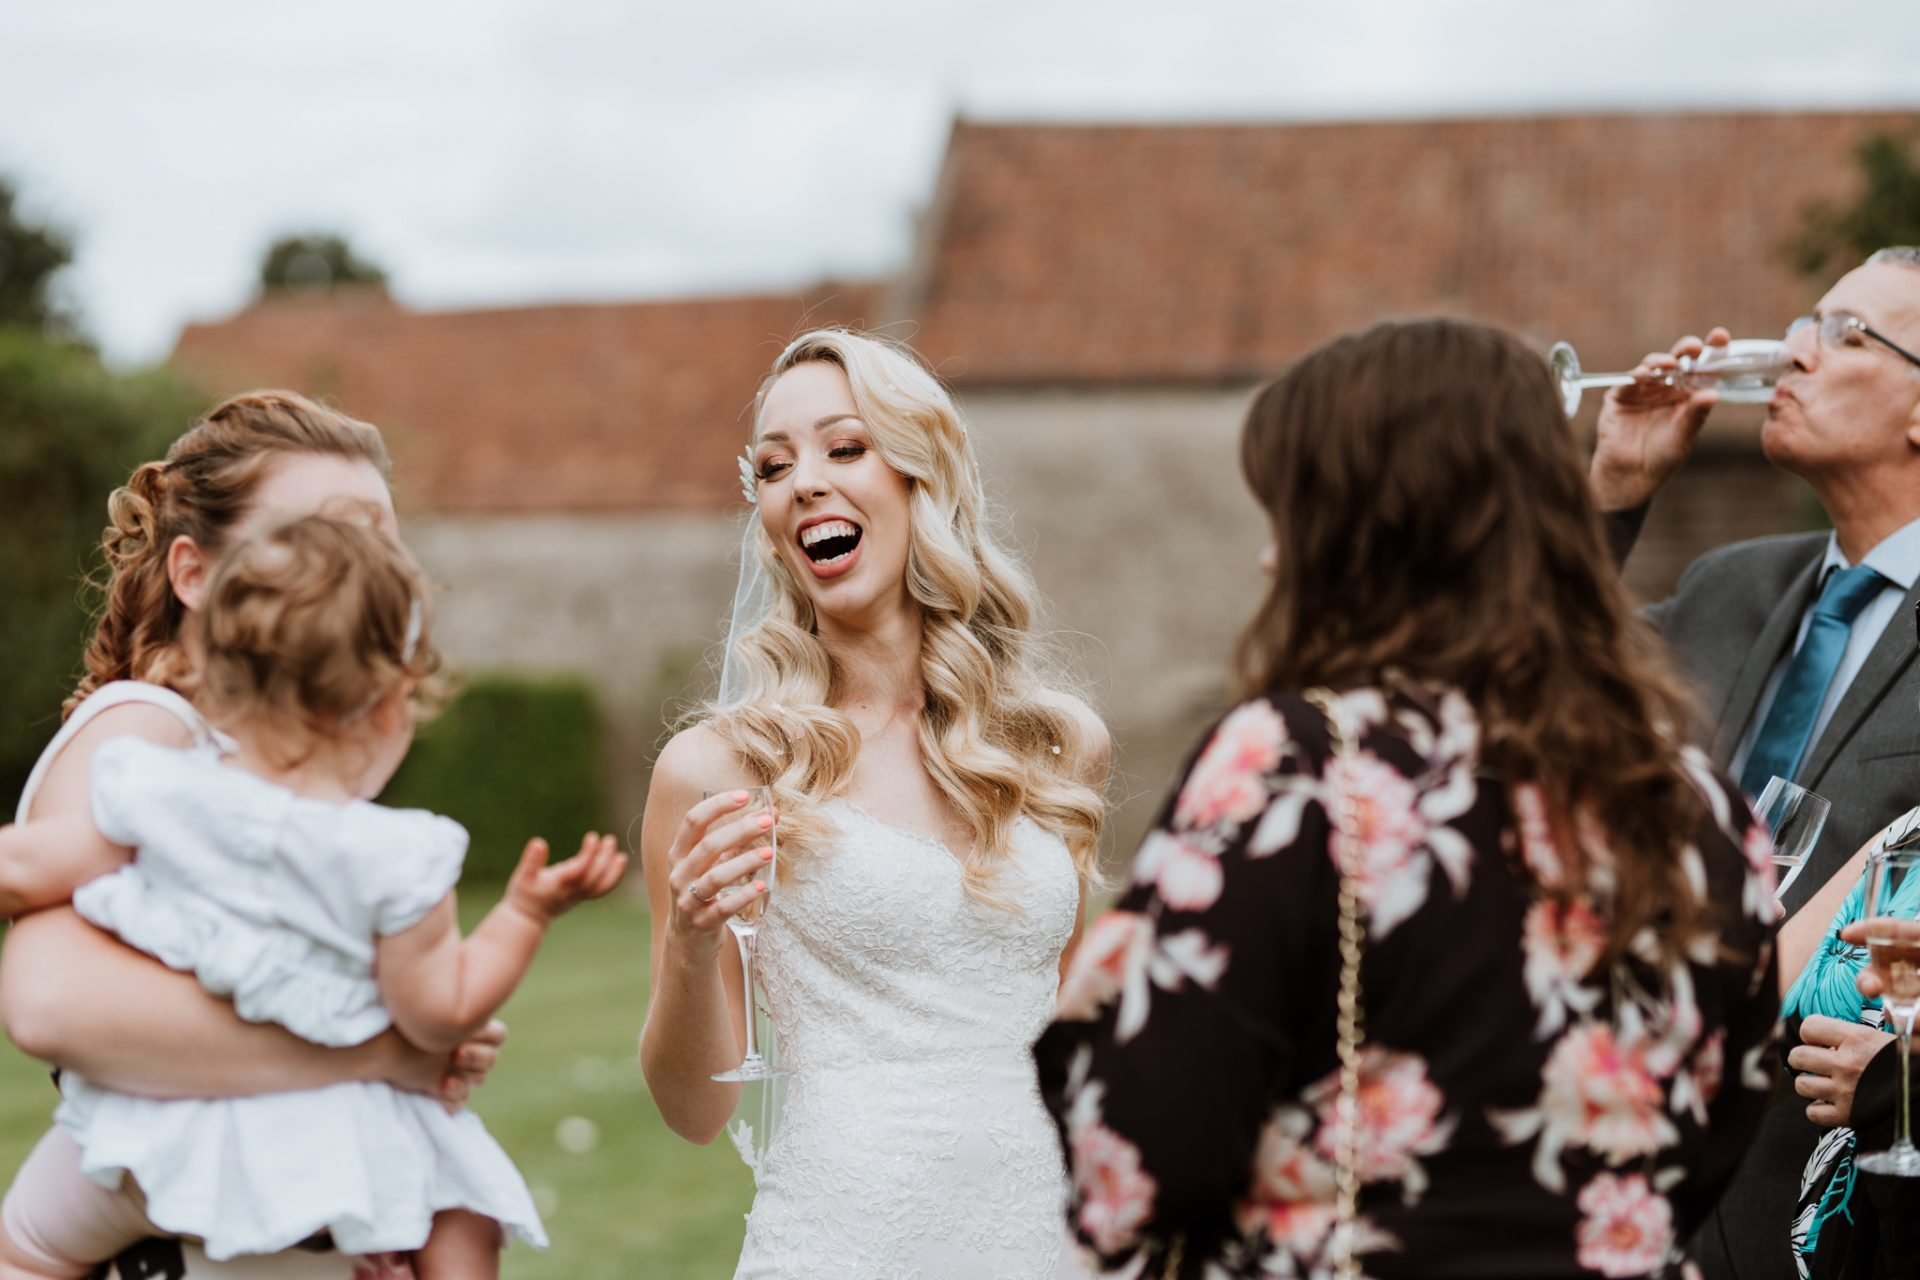 bride laughing reportage style wedding photography